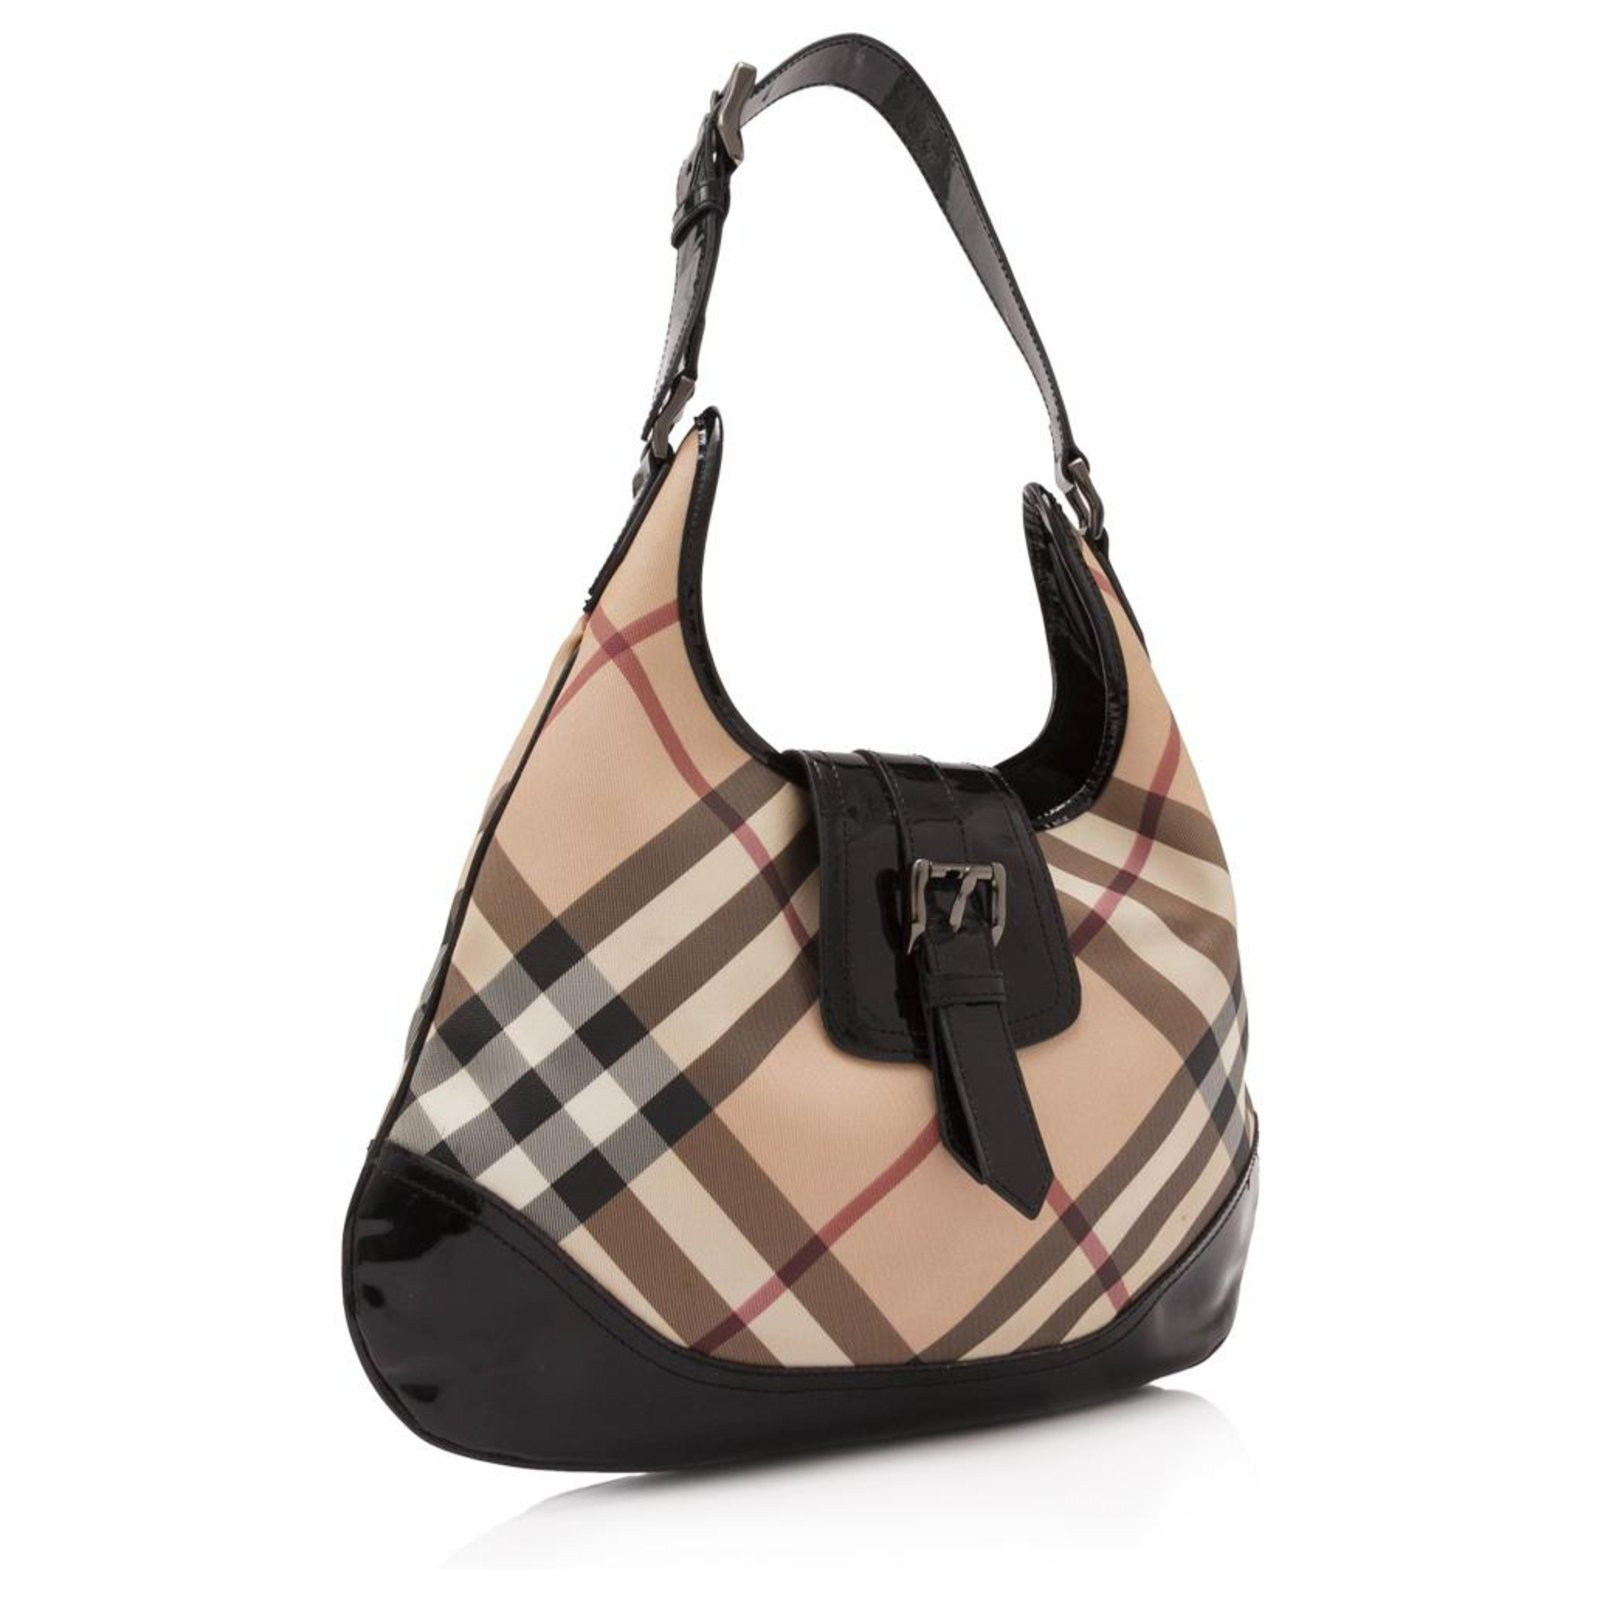 f3ead9172e1 Burberry Burberry Brown Nova Check Coated Canvas Brooke Hobo Bag Handbags  Leather,Patent leather,Cloth,Cloth Brown,Multiple colors,Beige ref.132557 -  Joli ...